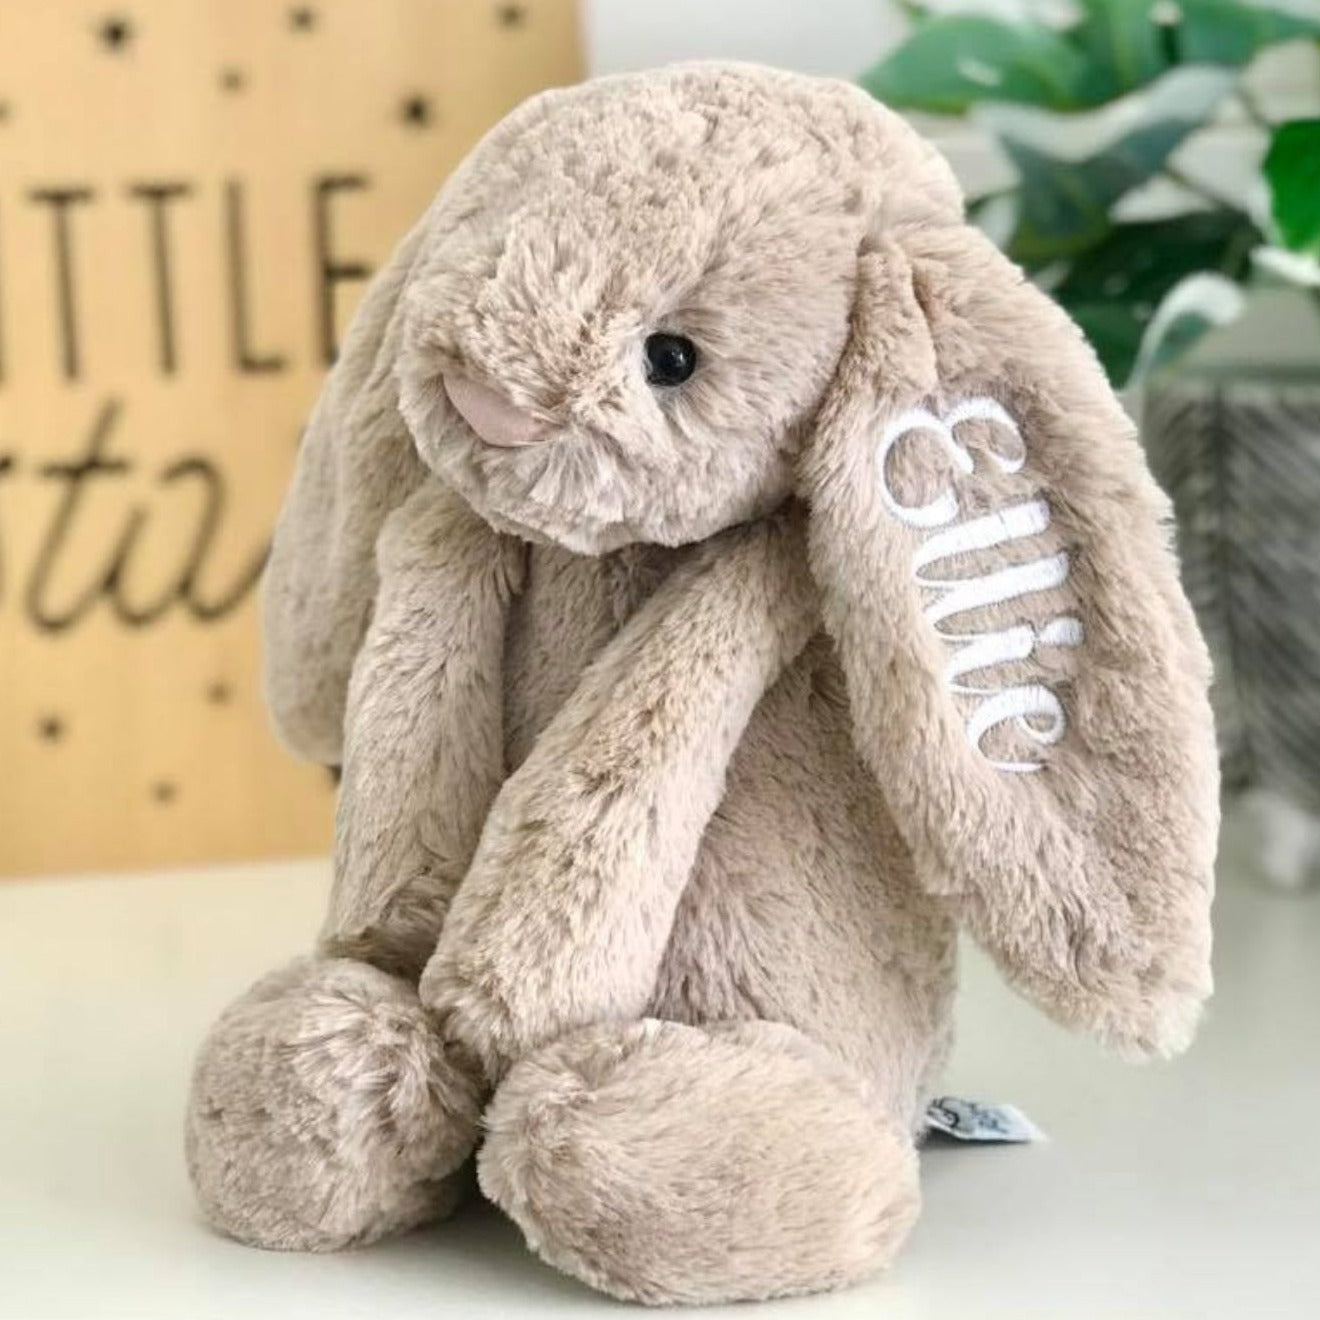 Personalised Jellycat Bashful Bunny Beige Australia, embroidered with white name on ear